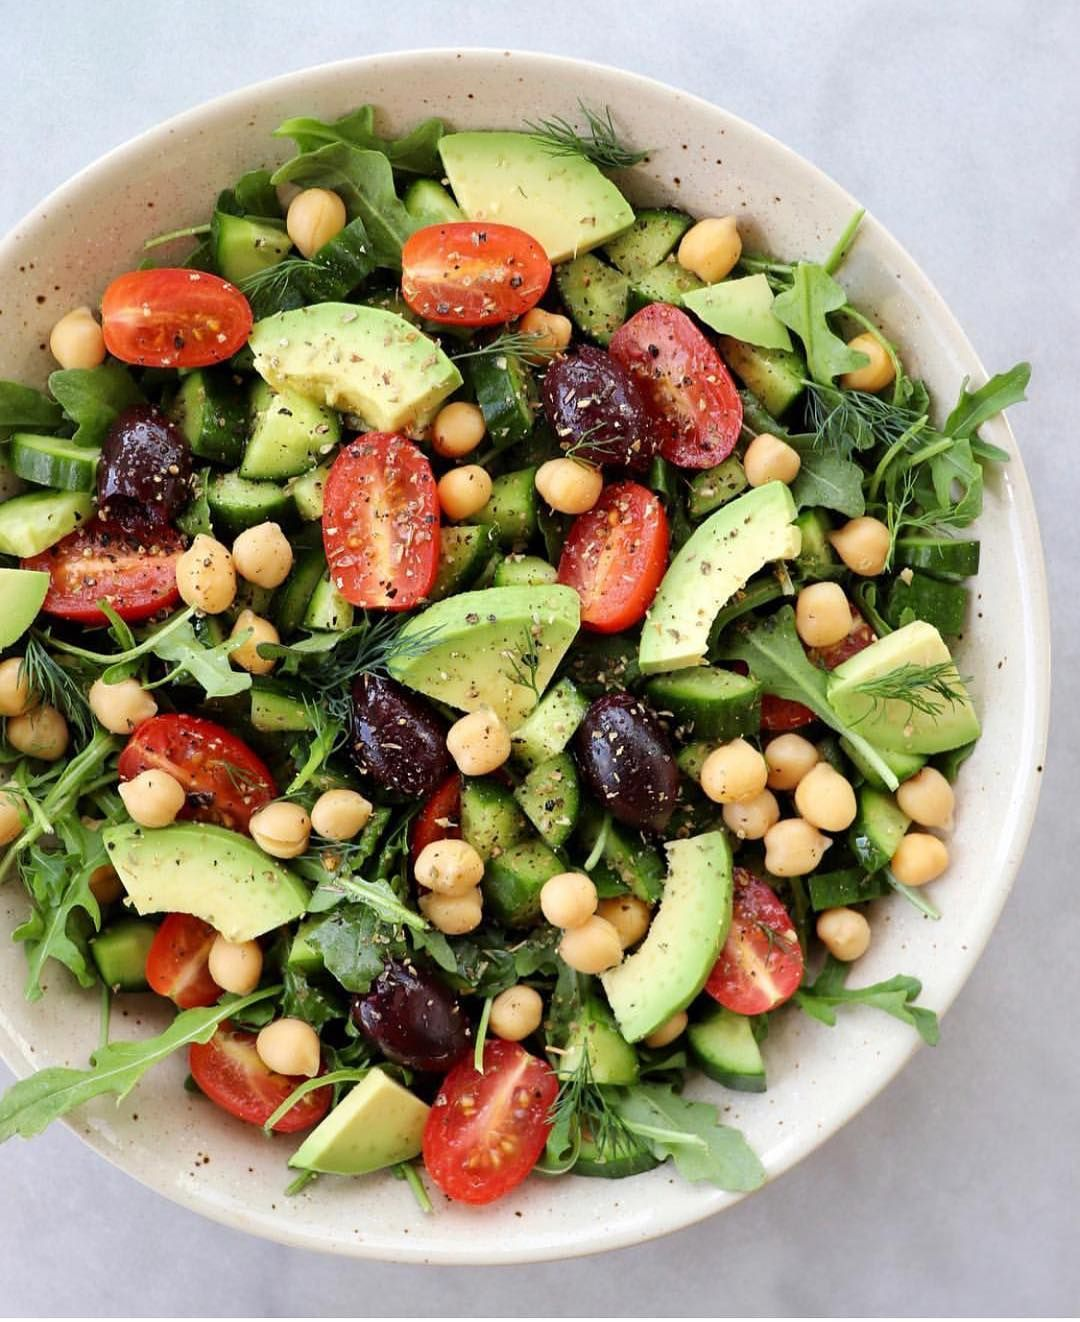 Vegan Recipes On Instagram Mediterranean Inspired Salad